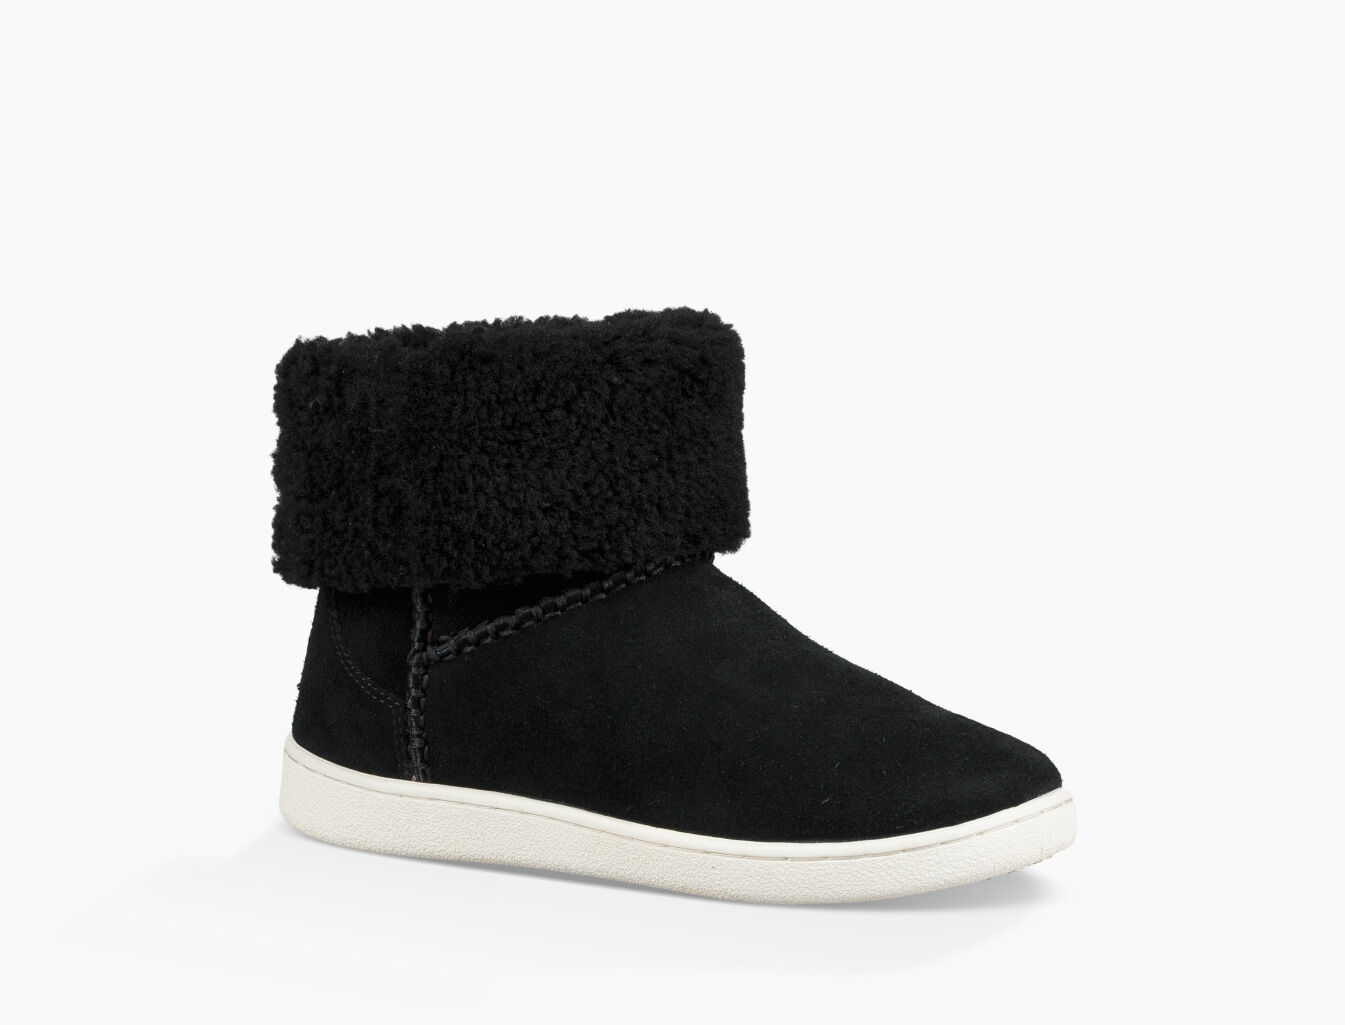 Mika Classic UGG Sneaker Boots   UGG